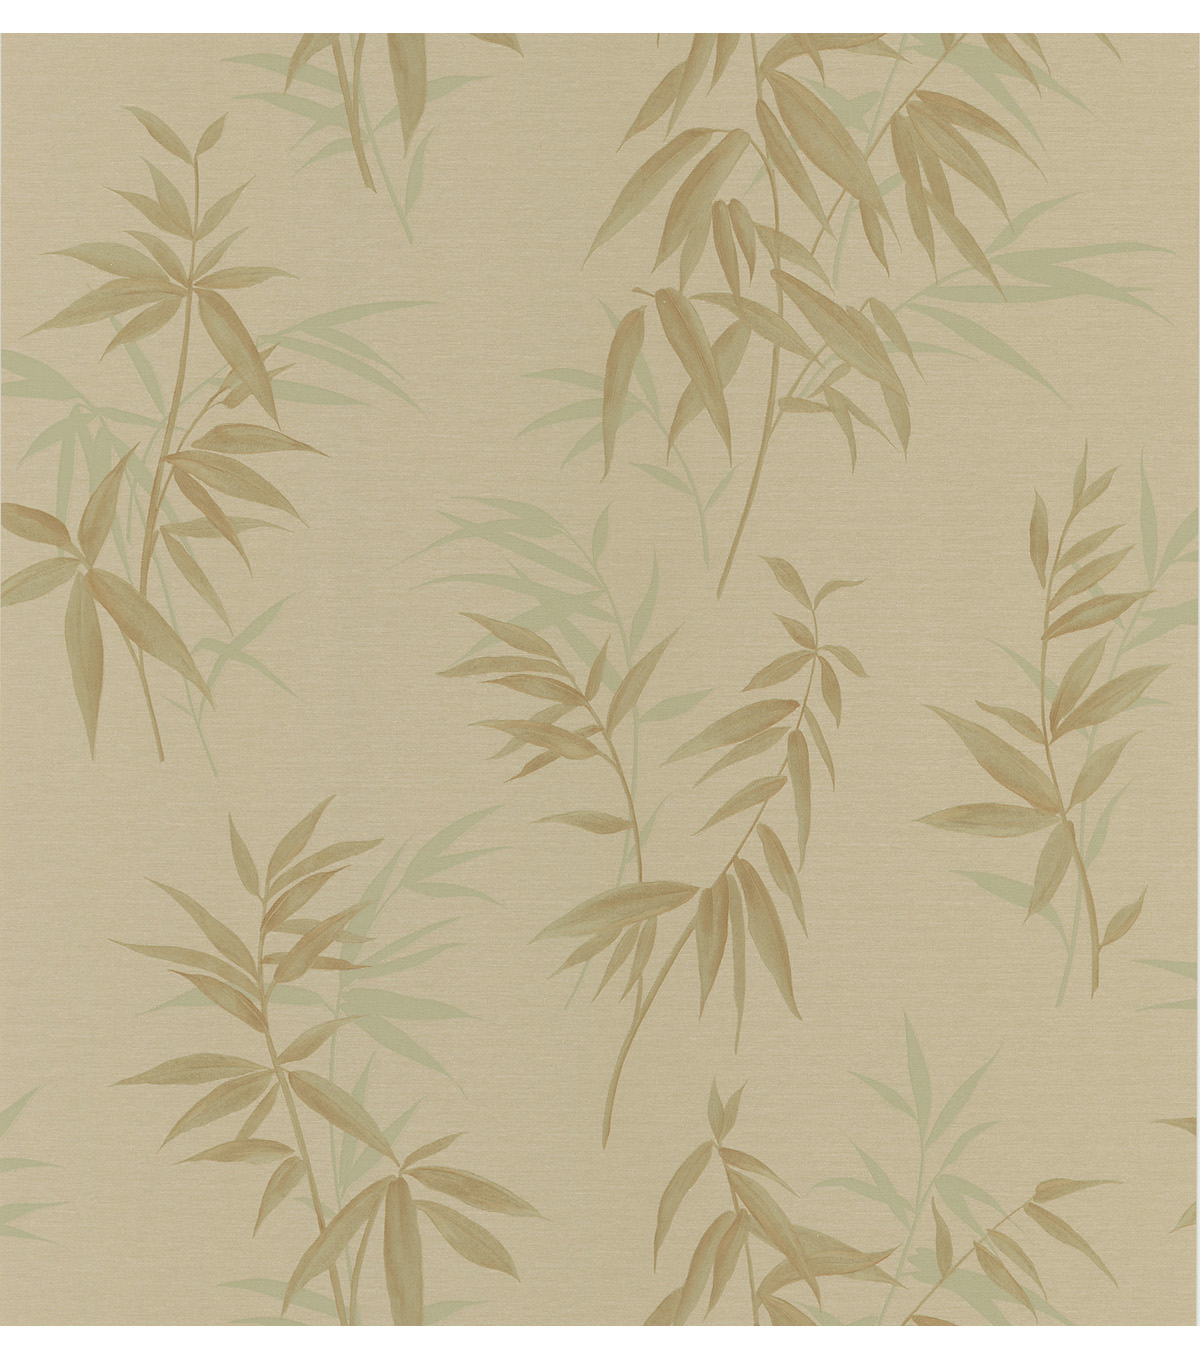 Bamboo Shoot Gold Leaves Wallpaper